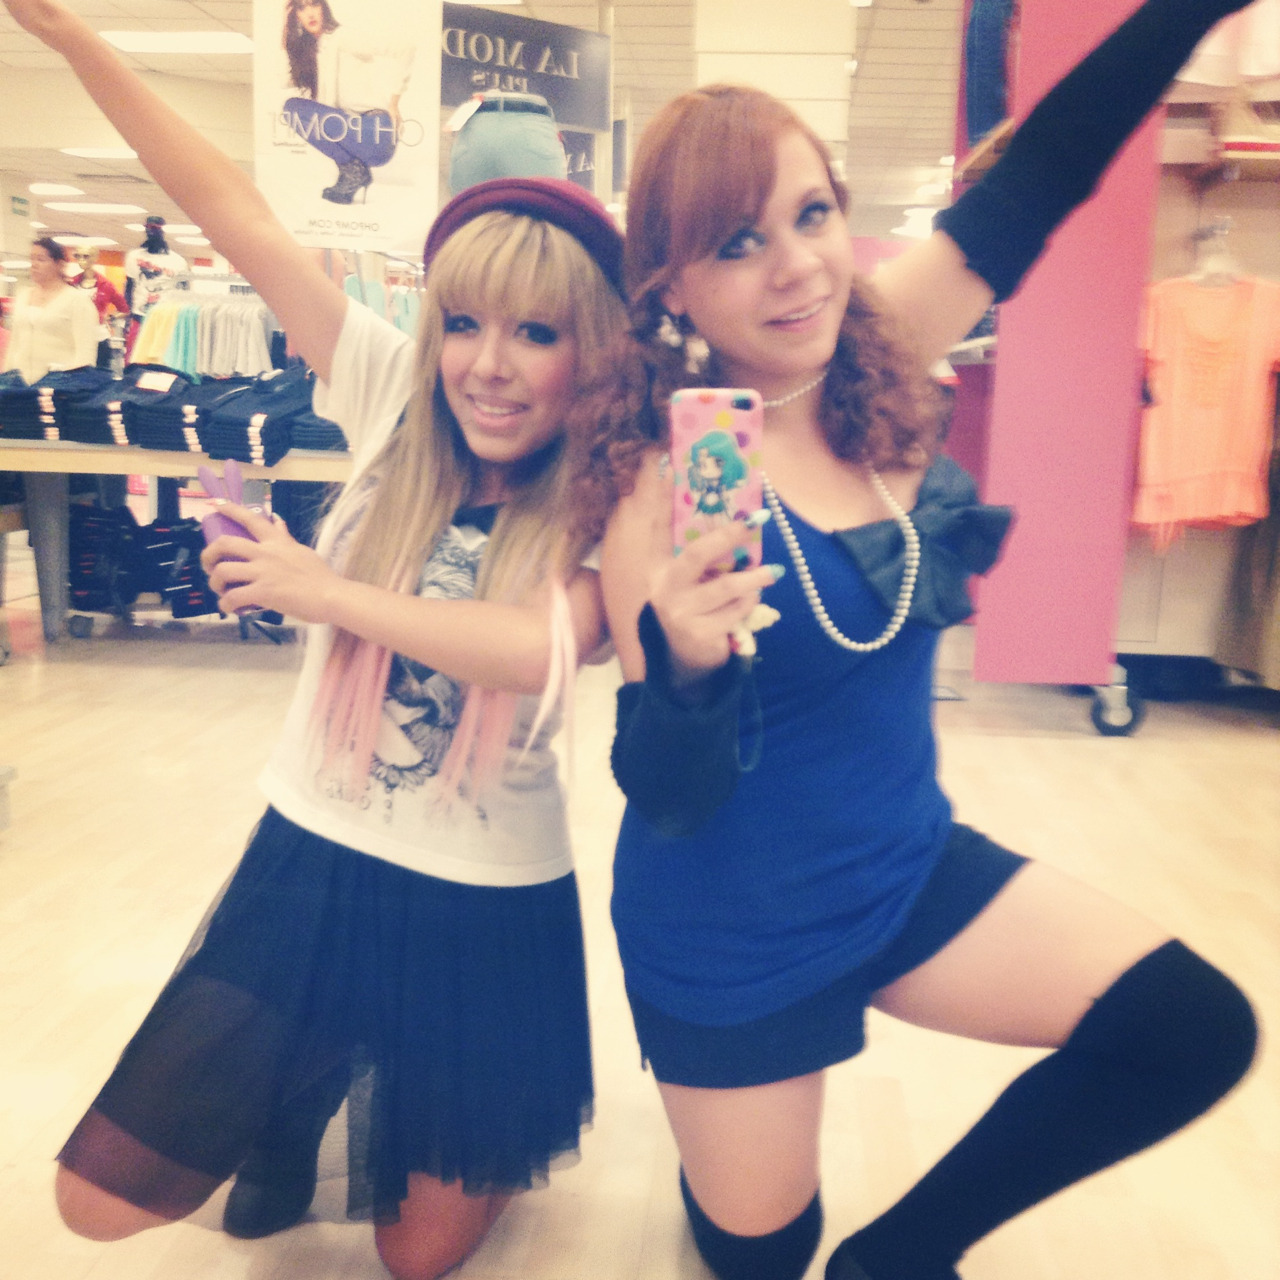 galthabasa:  Gyaru having fun <3  wtf is this NOT gyaru